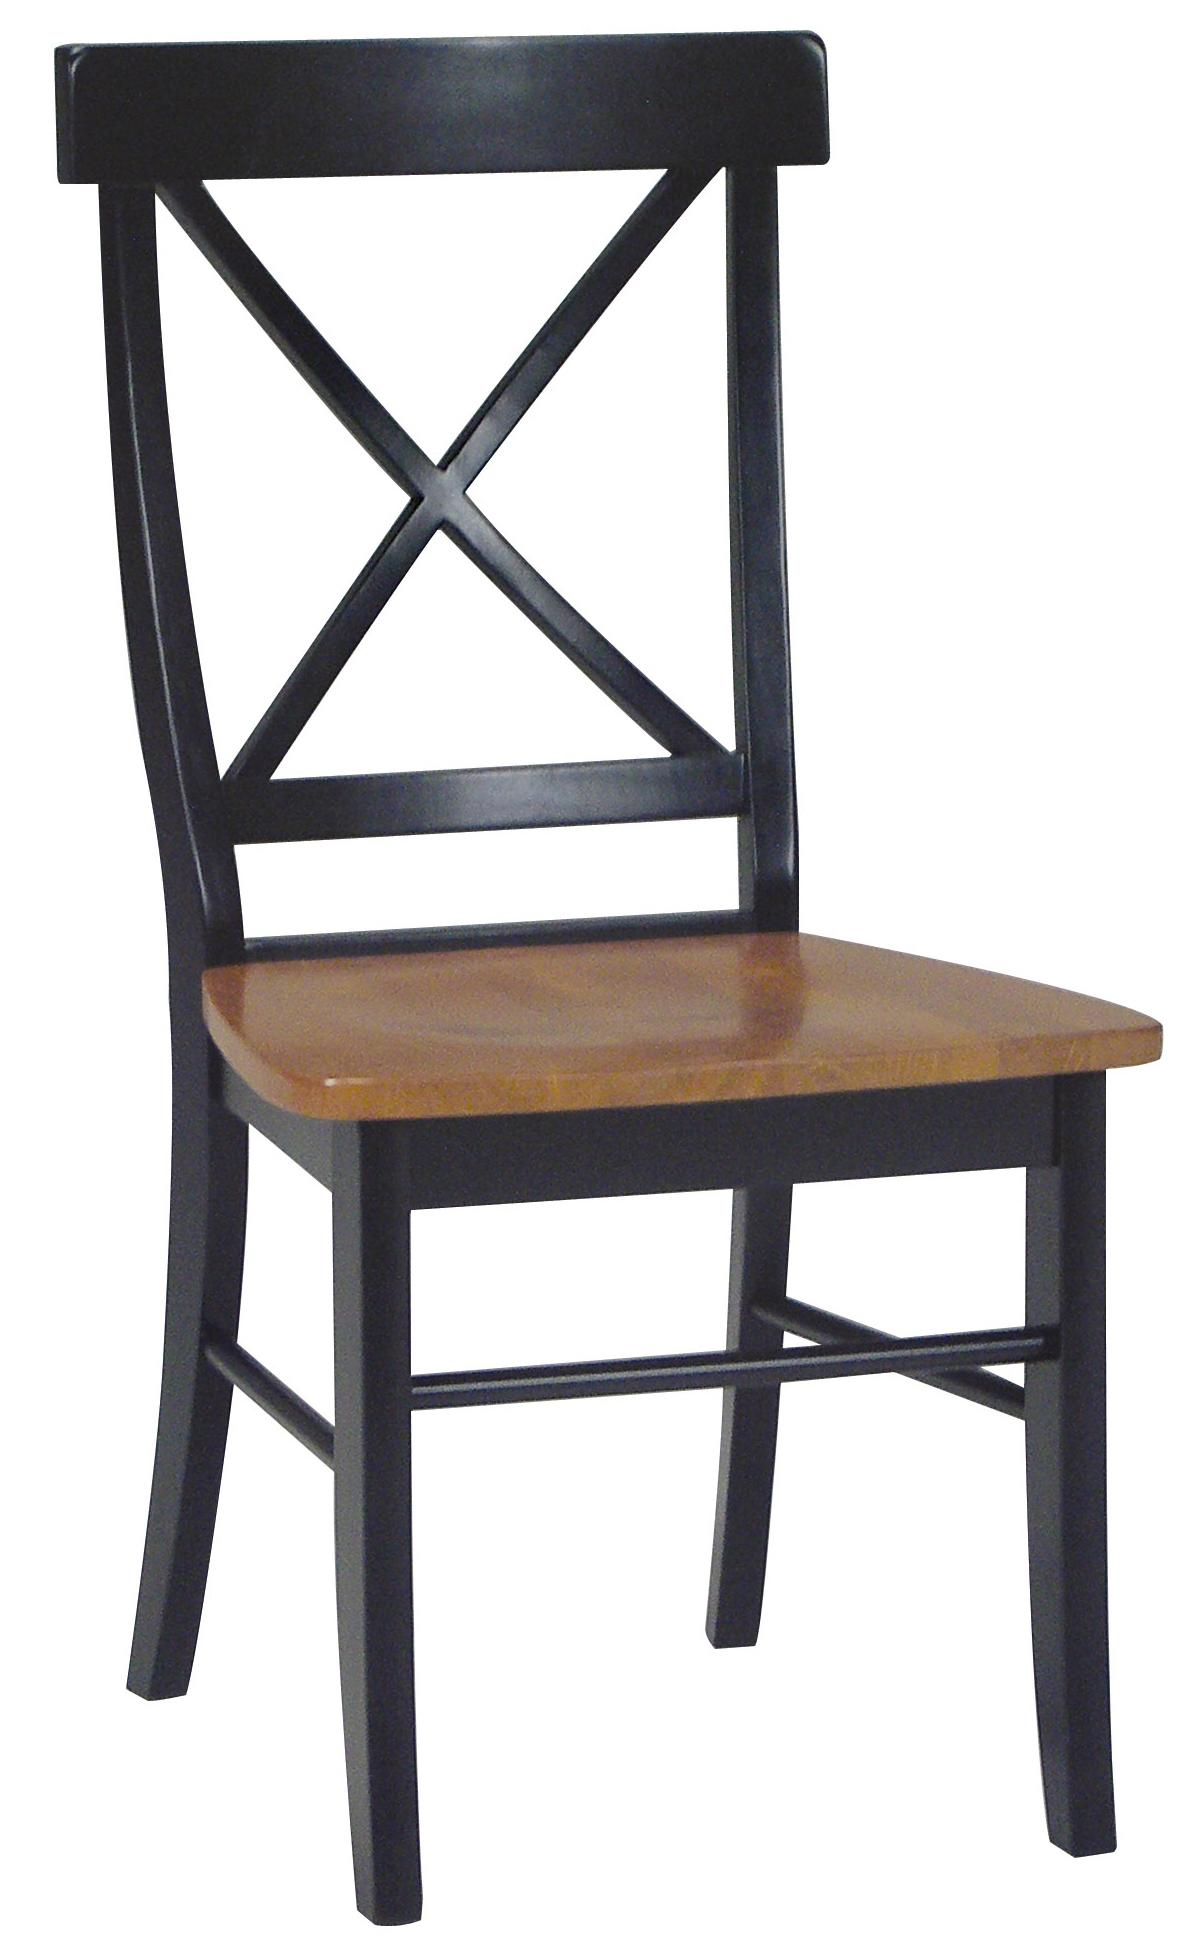 John Thomas Dining Essentials X-Back Side Chair - Item Number: C57-613